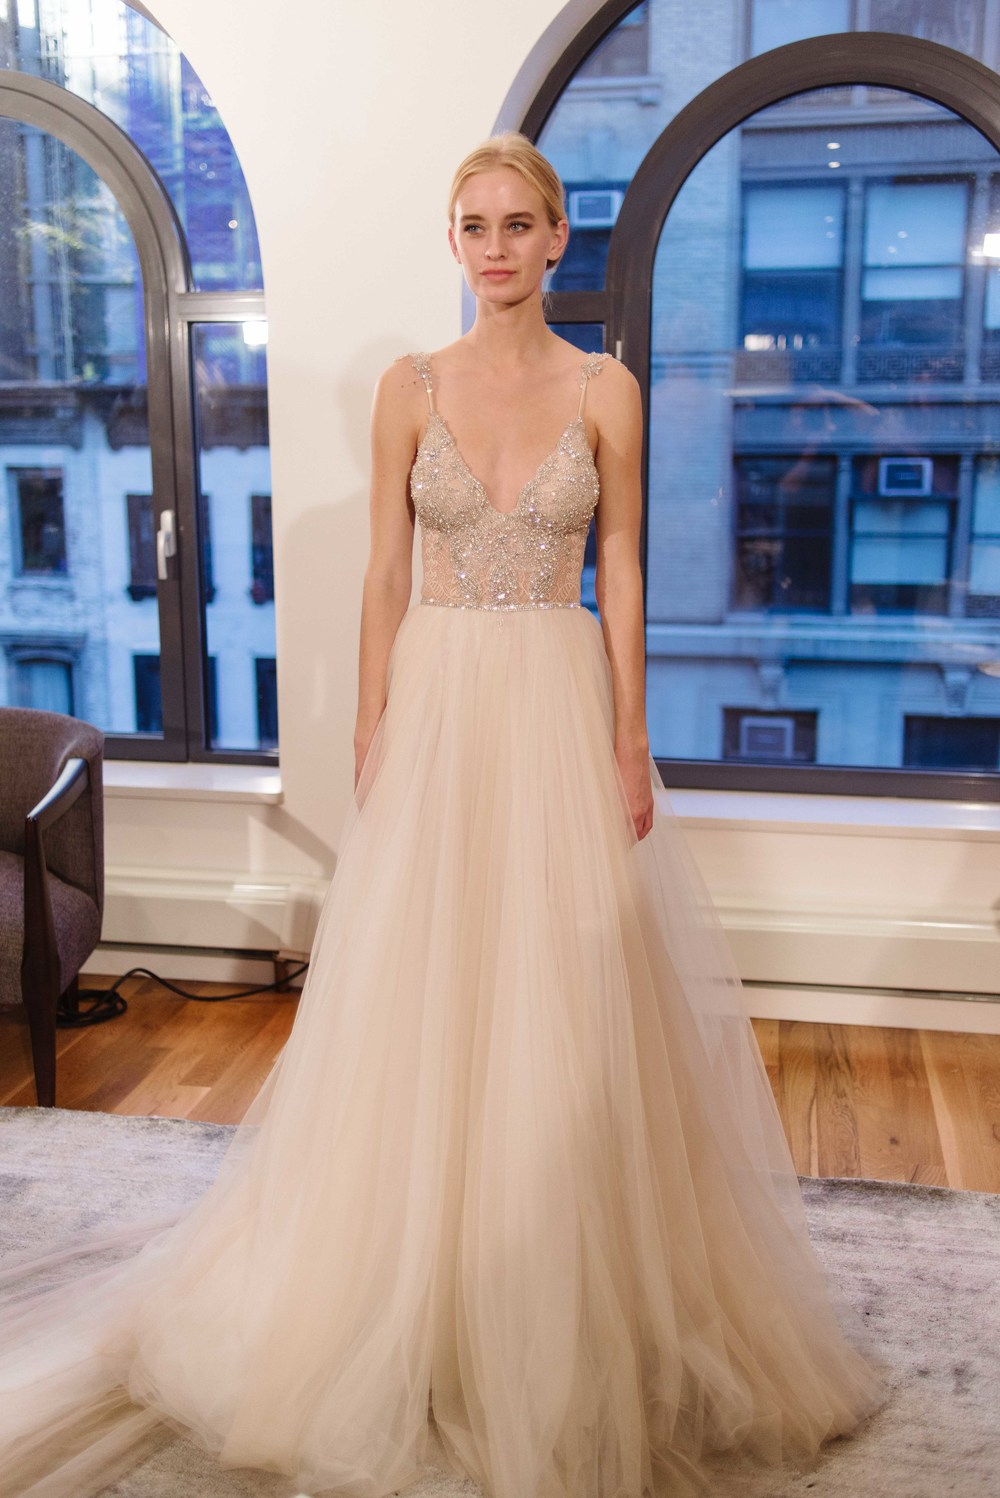 Galia Lahav GALA collection